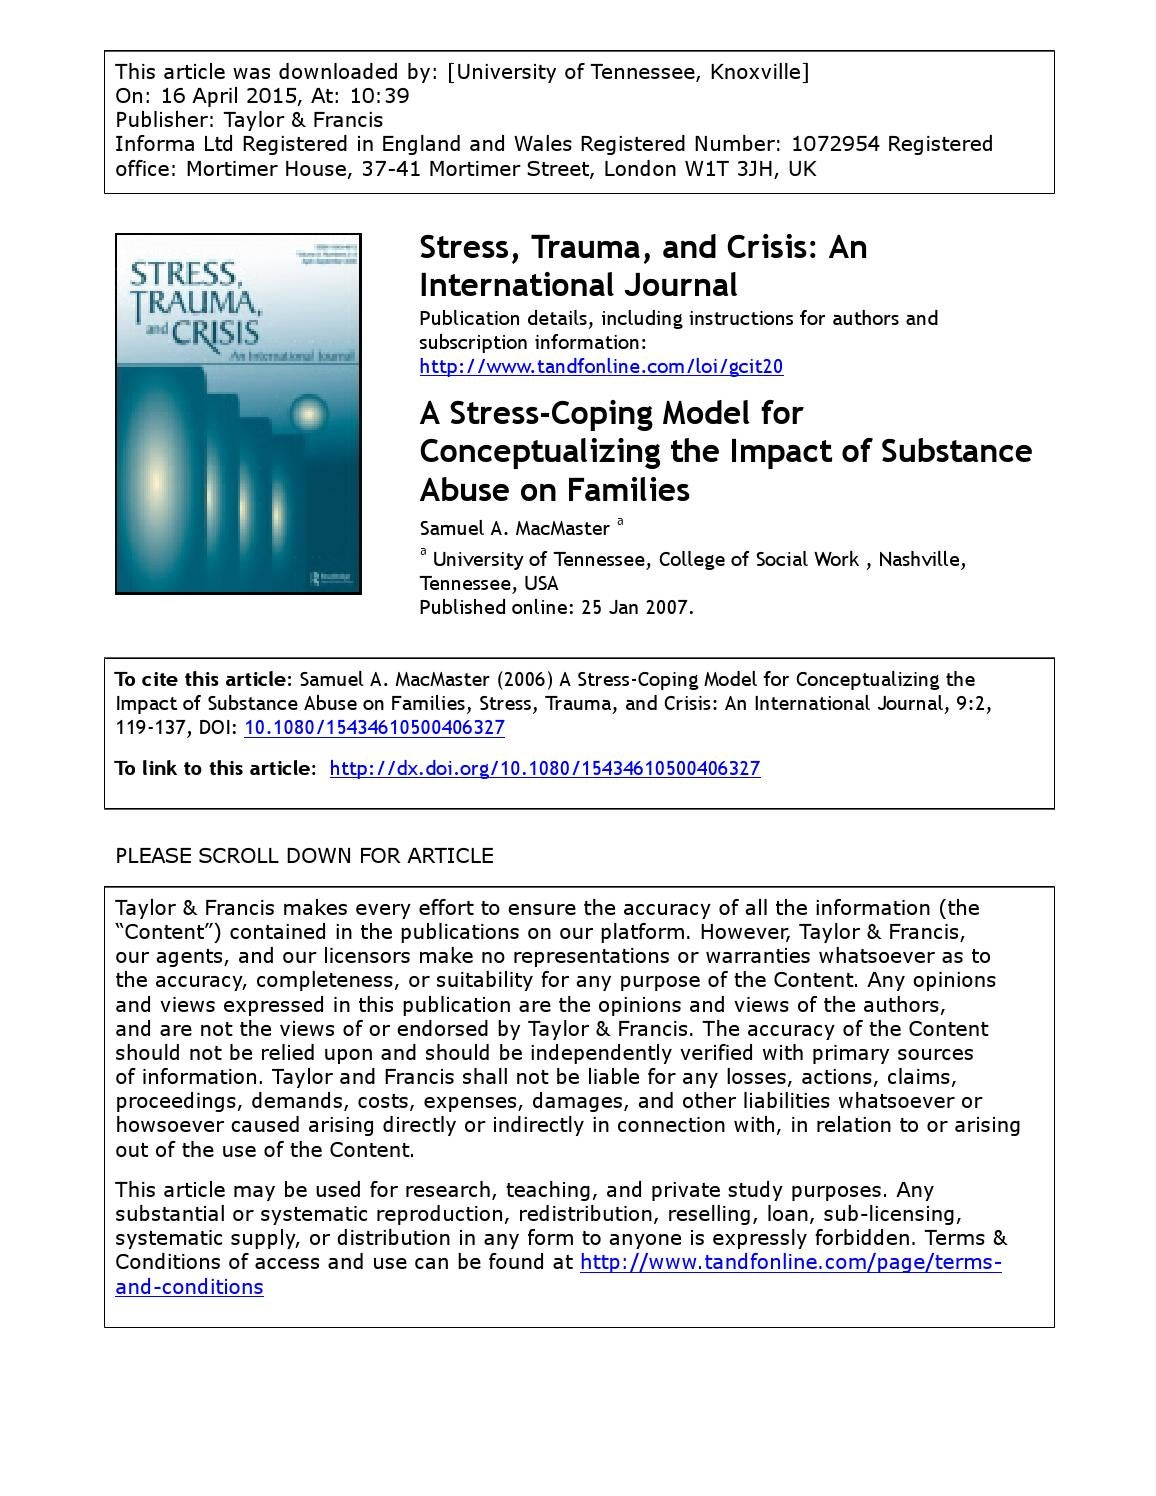 A Stress Coping Model For Conceptualizing The Impact Of Substance